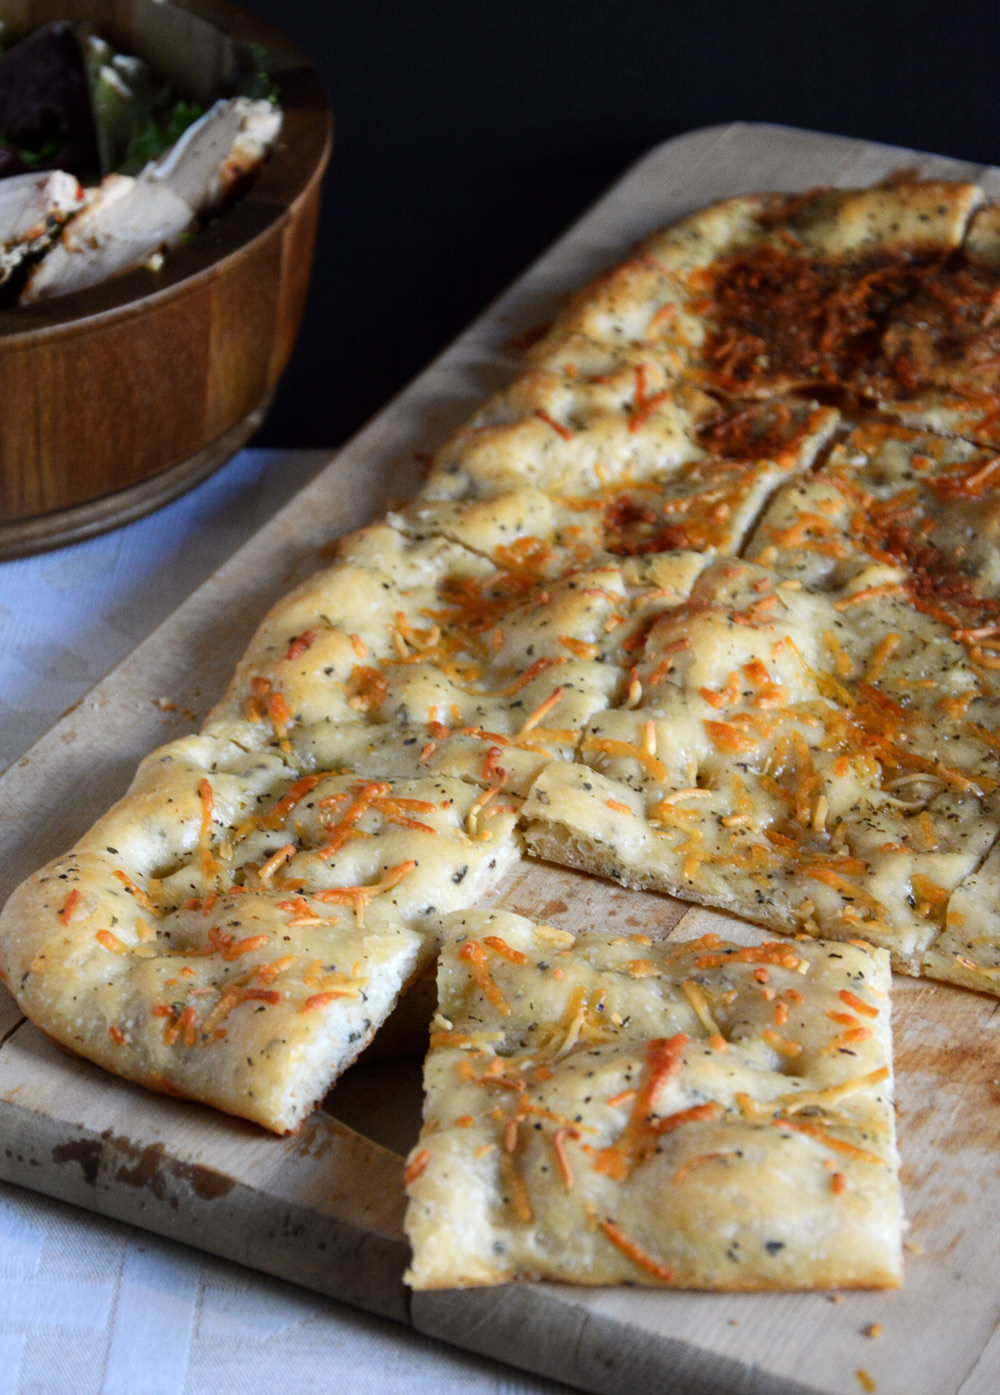 Simple Garlic Oil Focaccia | The Housewife in Training Files